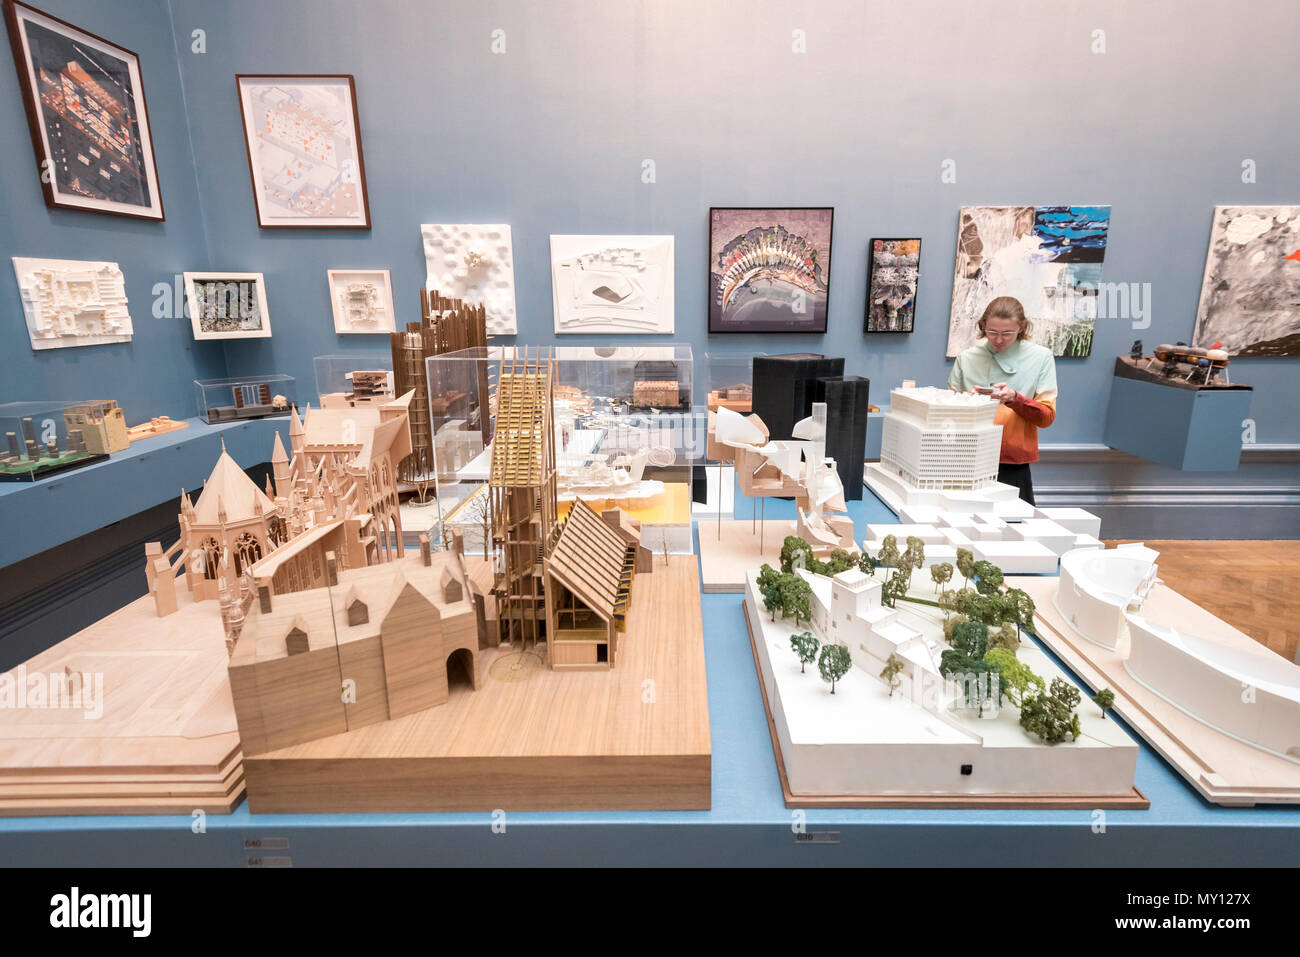 London, UK.  5 June 2018. Architectural models at the preview of the 250th Summer Exhibition at the Royal Academy of Arts in Piccadilly, which has been co-ordinated by Grayson Perry RA this year.  Running concurrently, is The Great Spectacle, featuring highlights from the past 250 years.  Both shows run 12 June to 19 August 2018. Credit: Stephen Chung / Alamy Live News - Stock Image